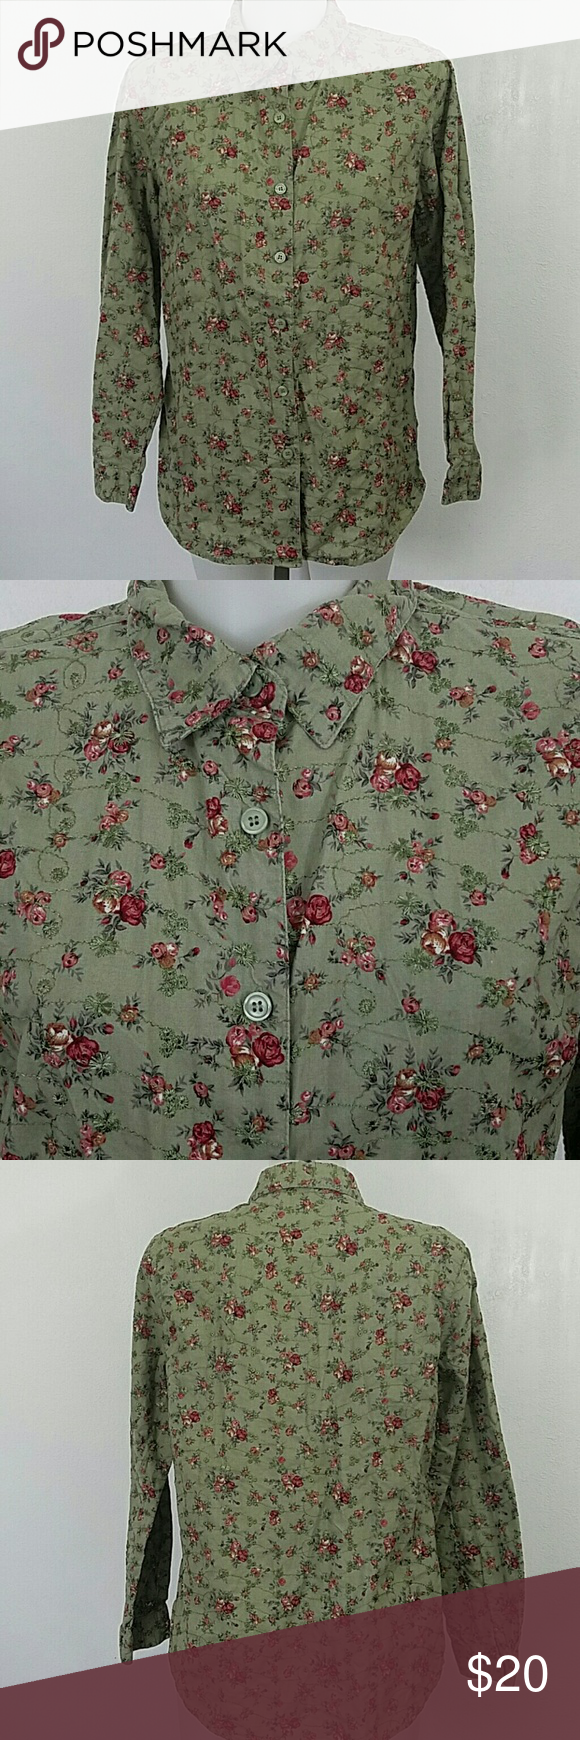 "Floral Print Button Down Blouse by Lemon Grass Floral Print Button Down Blouse by Lemon Grass. In great condition. Size medium.  Bust 40"" Length 28"" Lemon Grass  Tops Button Down Shirts"